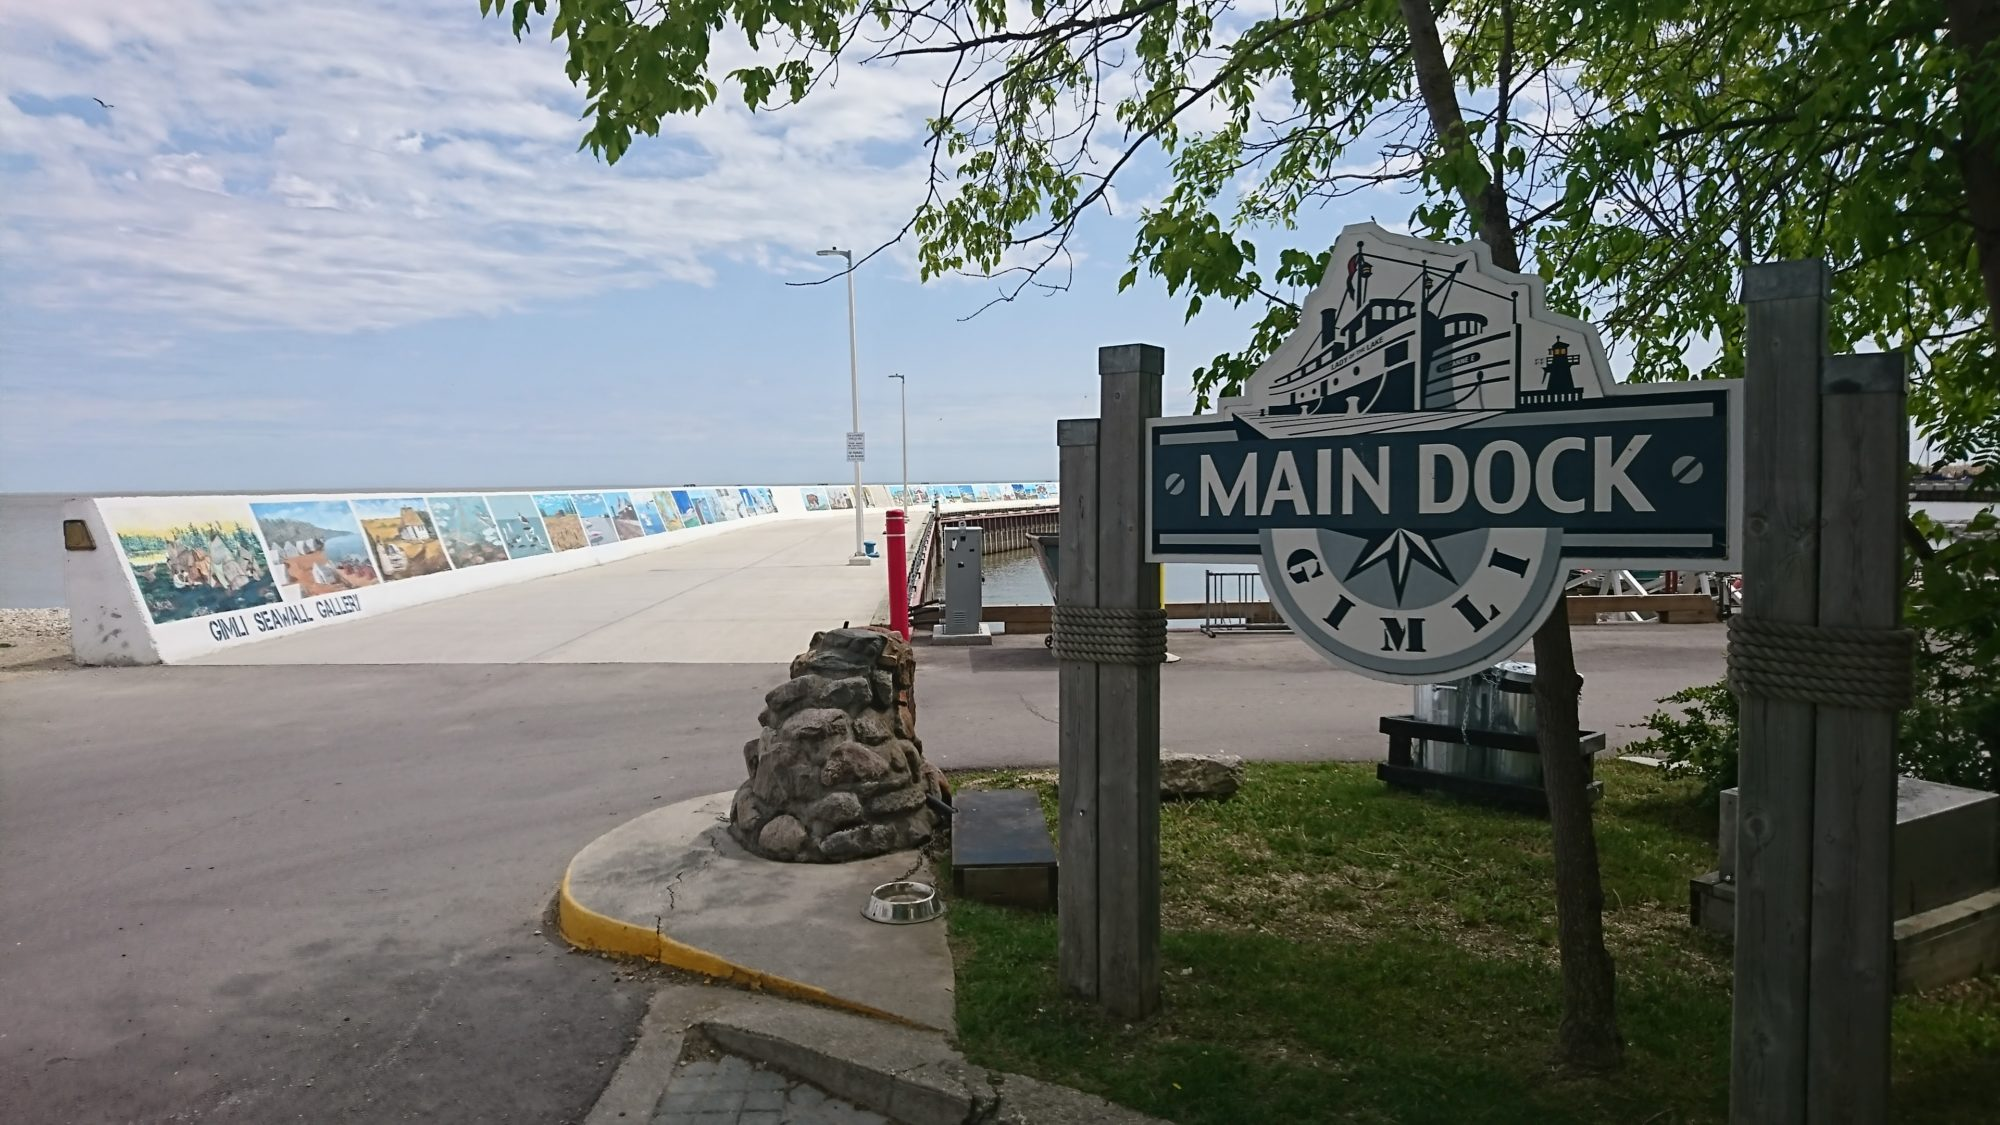 Gimli Main Dock